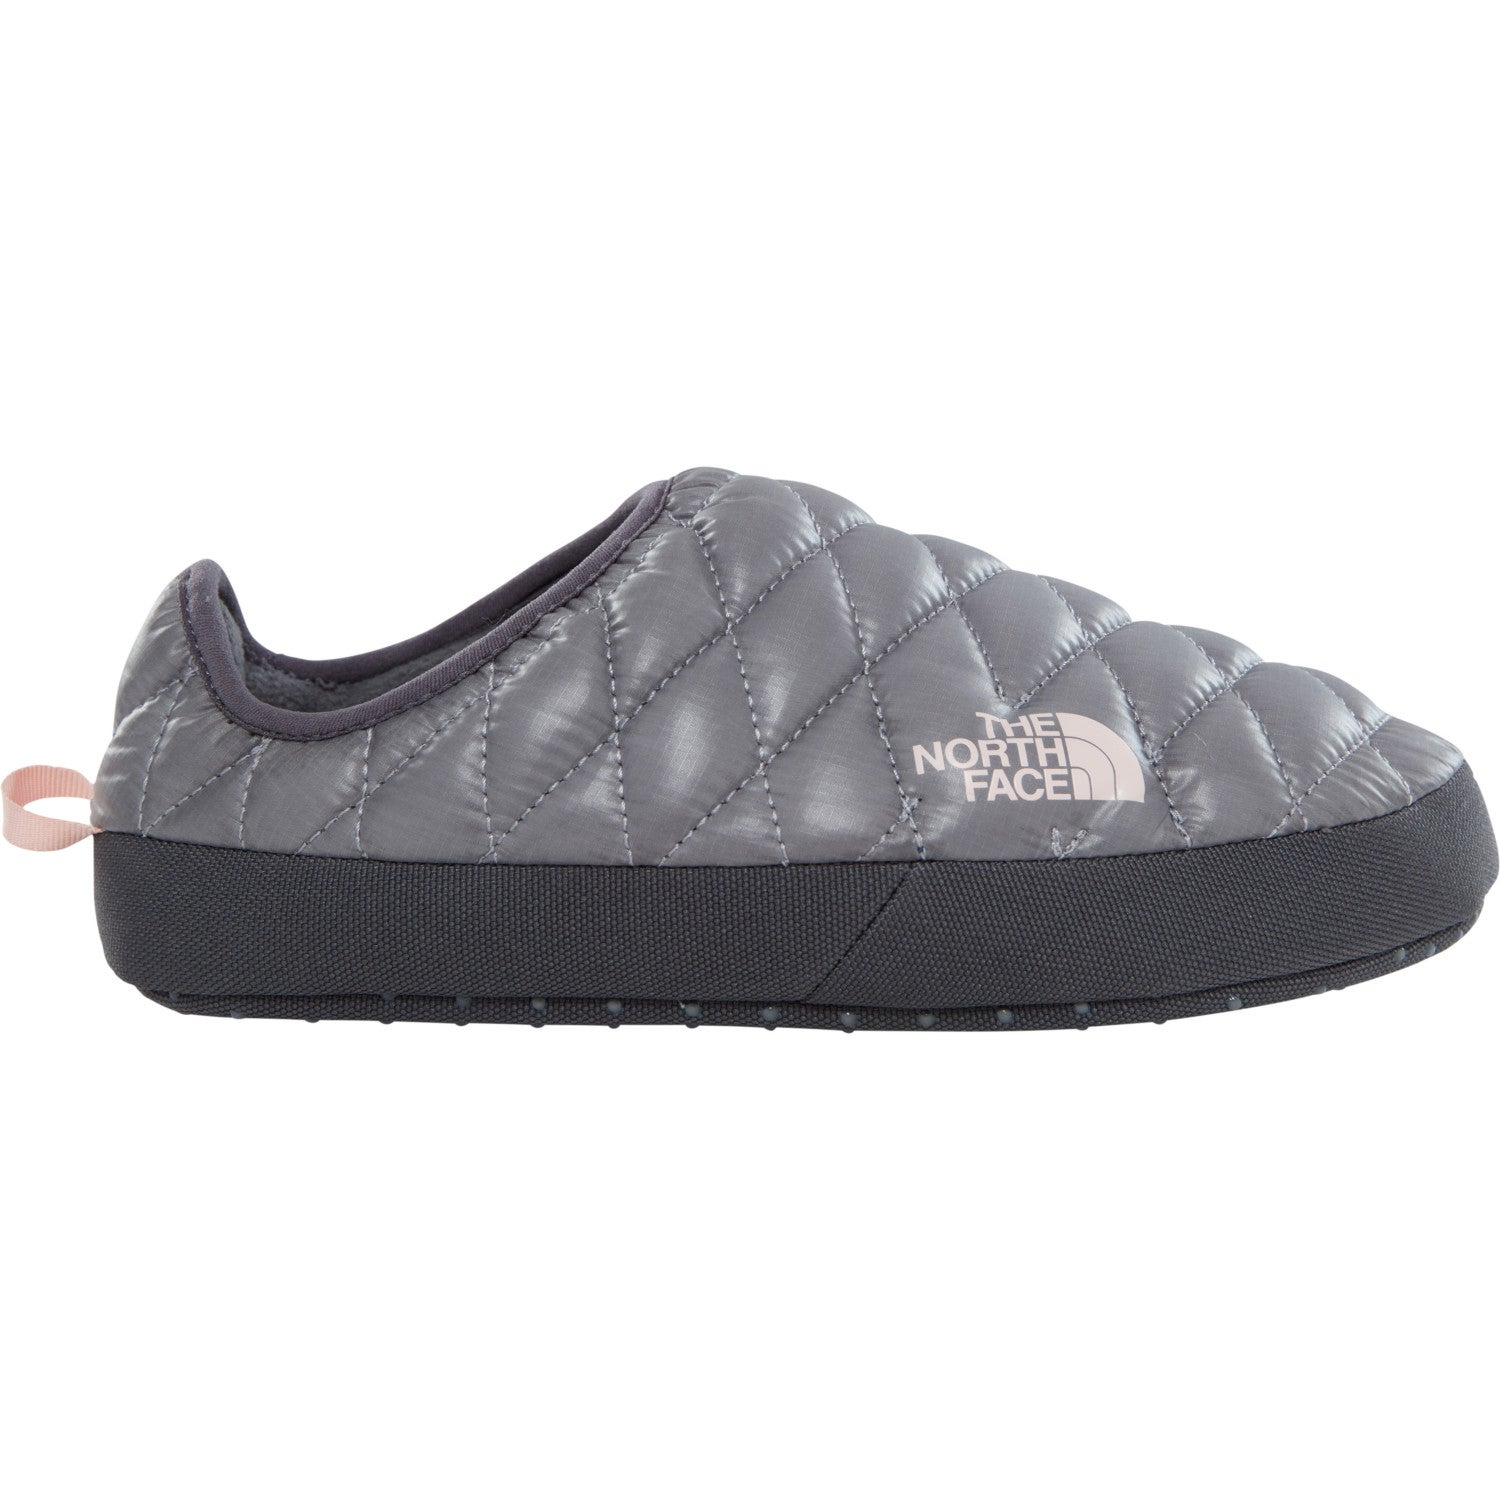 North Face Thermoball Tent Mule IV Ladies Slippers from Fitness Footwear. u201c  sc 1 st  Fitness Footwear & North Face Thermoball Tent Mule IV Ladies Slippers from Fitness Footwear